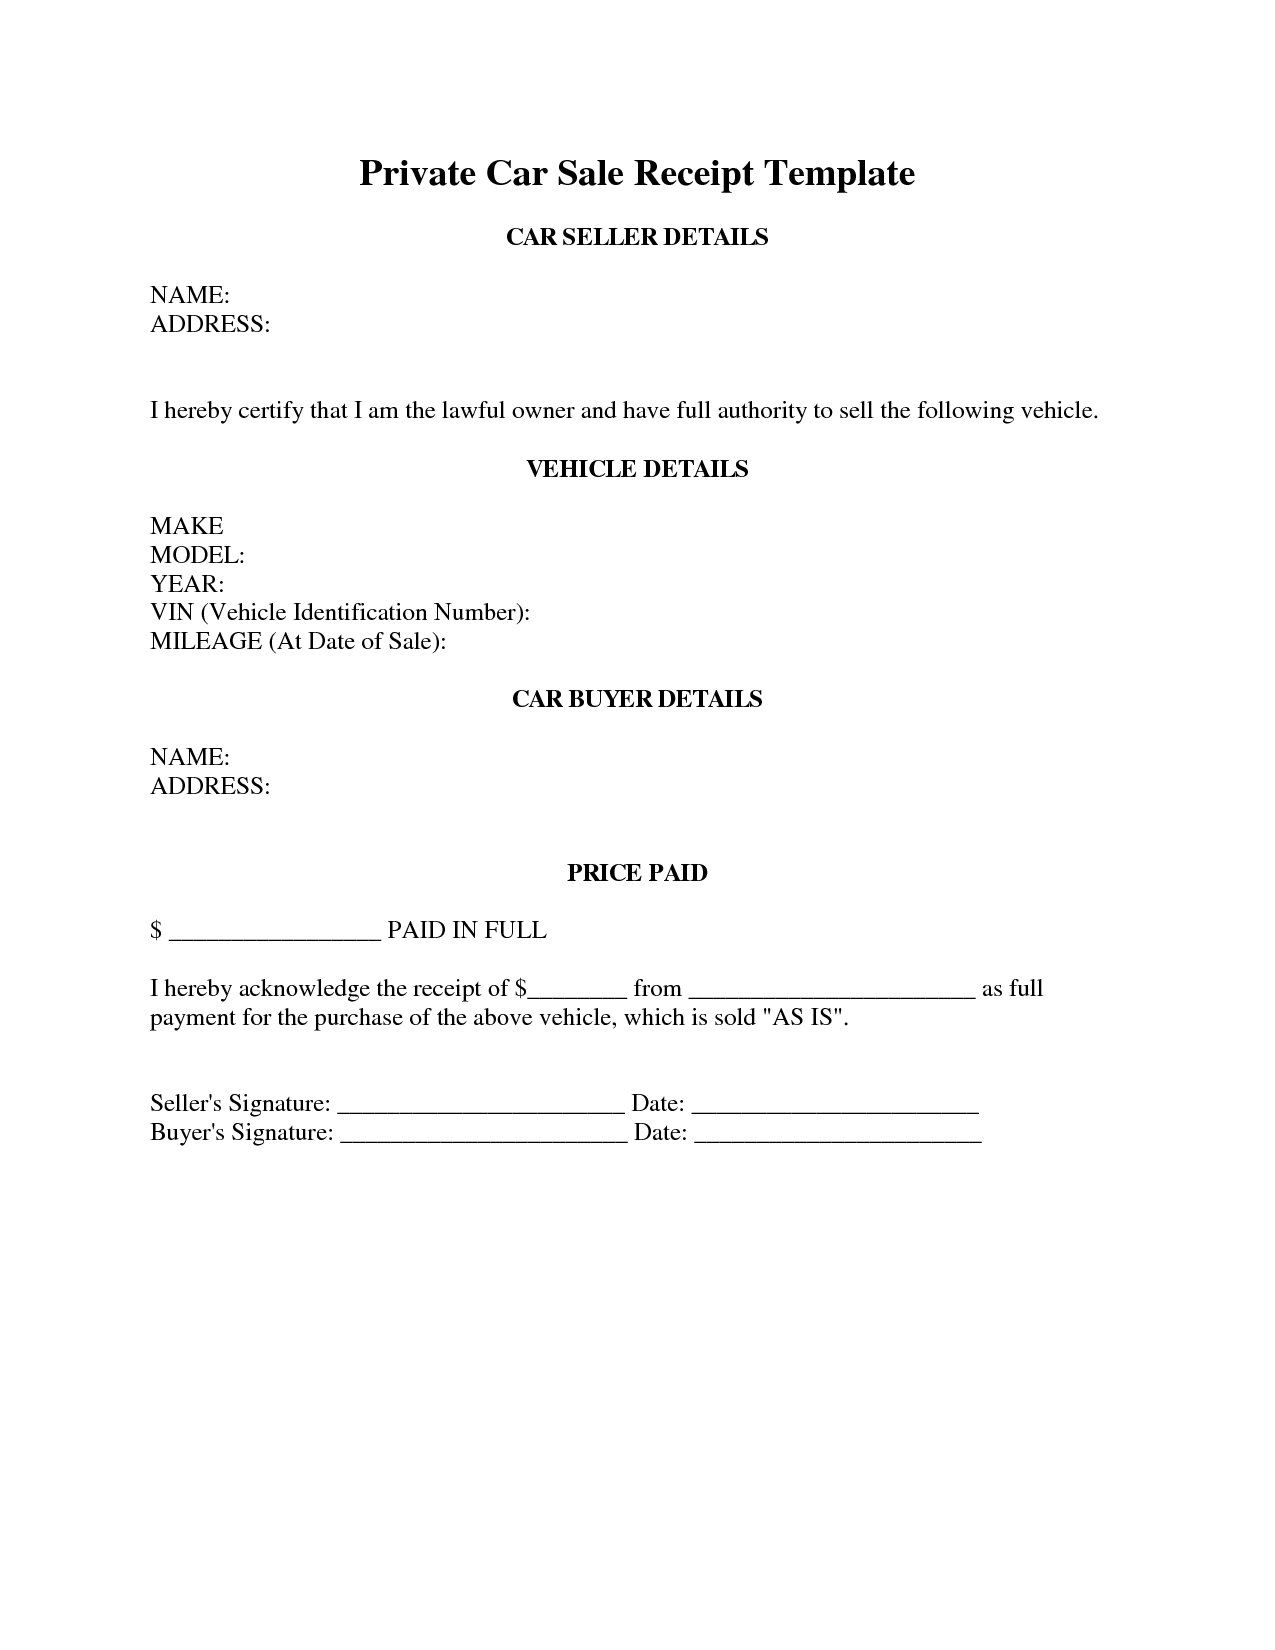 Car sales invoice template uk invoice example car sales invoice template uk vehicle sales invoice template vehicle sale invoice template 124473889 yknbft yutiil jhlwpi pronofoot35fo Image collections